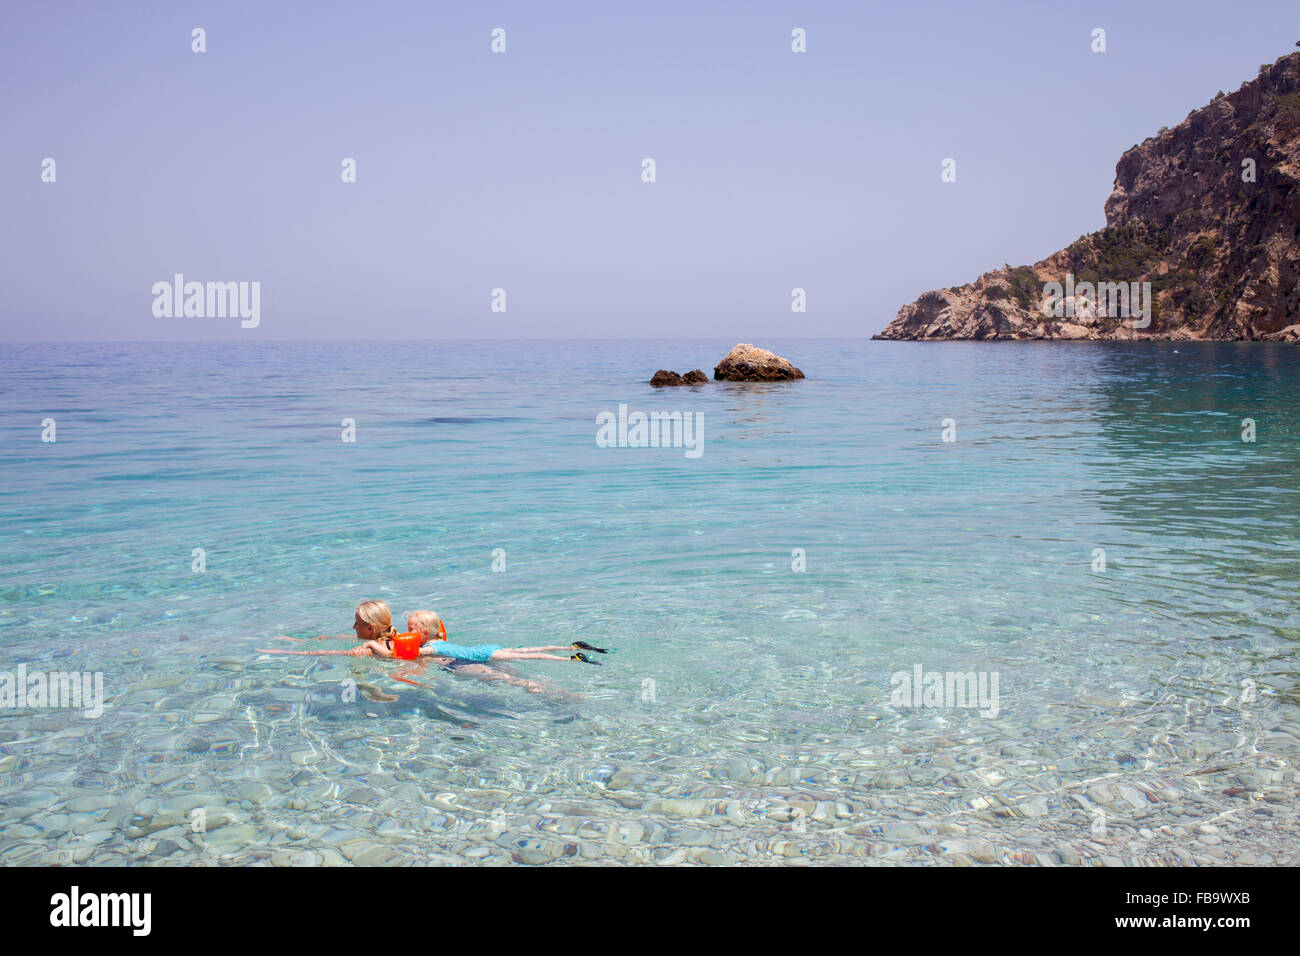 Grèce, Karpathos, Amopi, Woman and girl (6-7) swimming in sea Banque D'Images